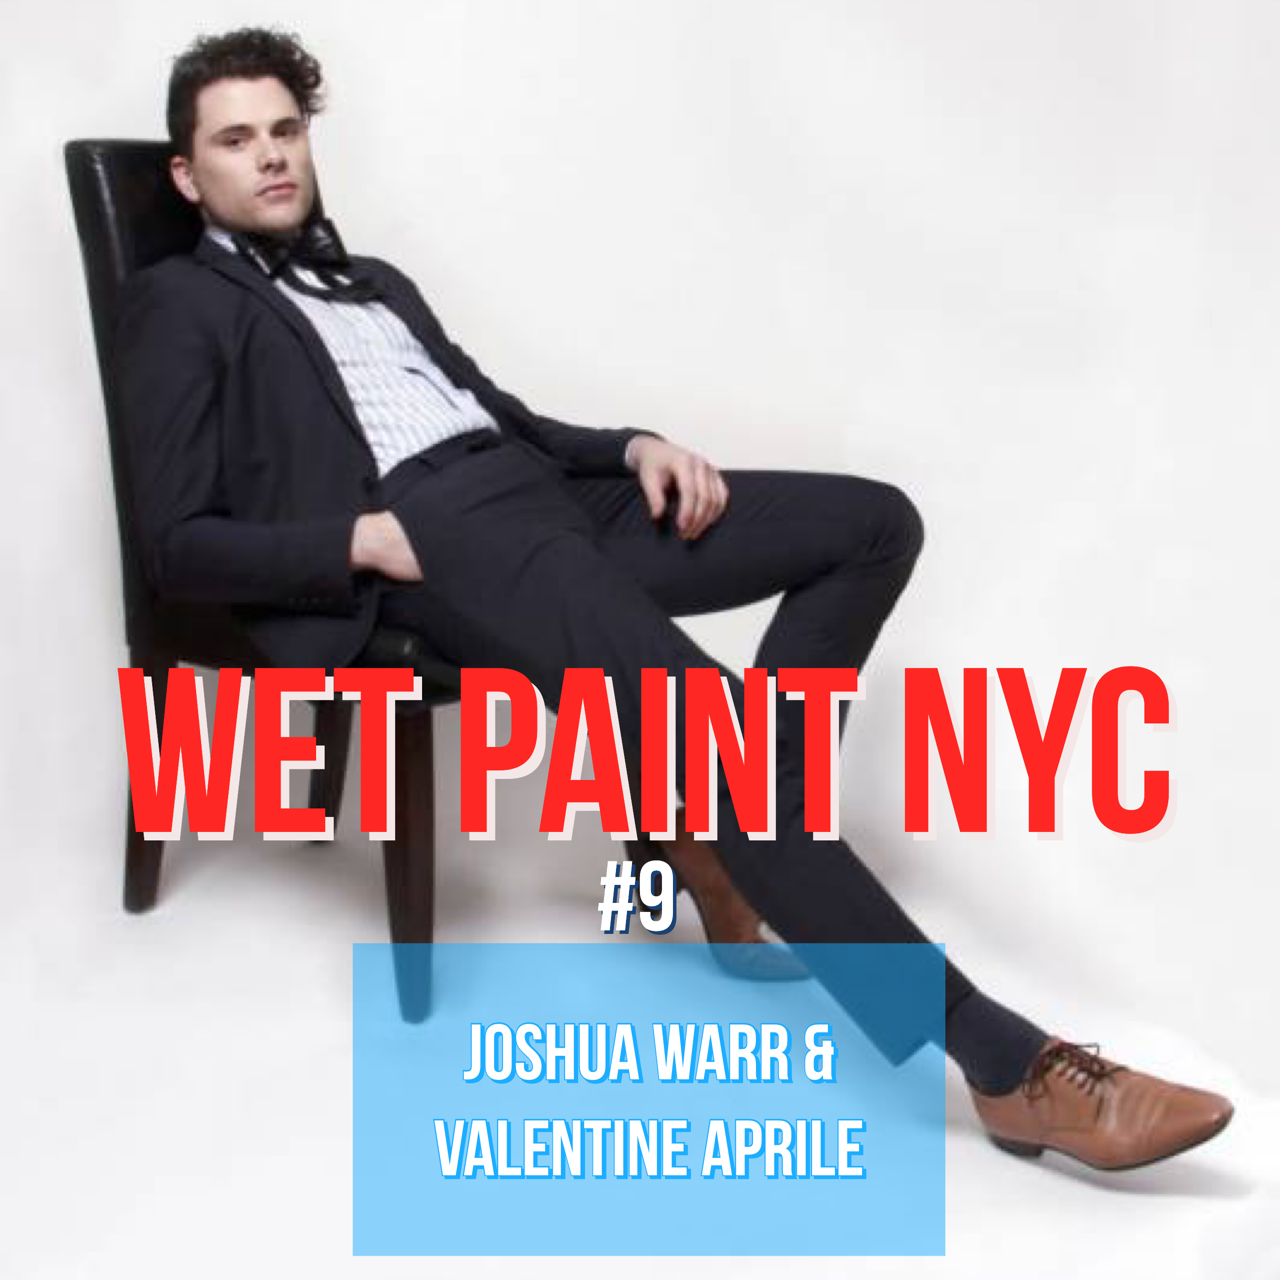 Joshua Warr &Valentine Aprile share their experiences in the world of Theater and the LGBTQ community as well as upcoming projects.